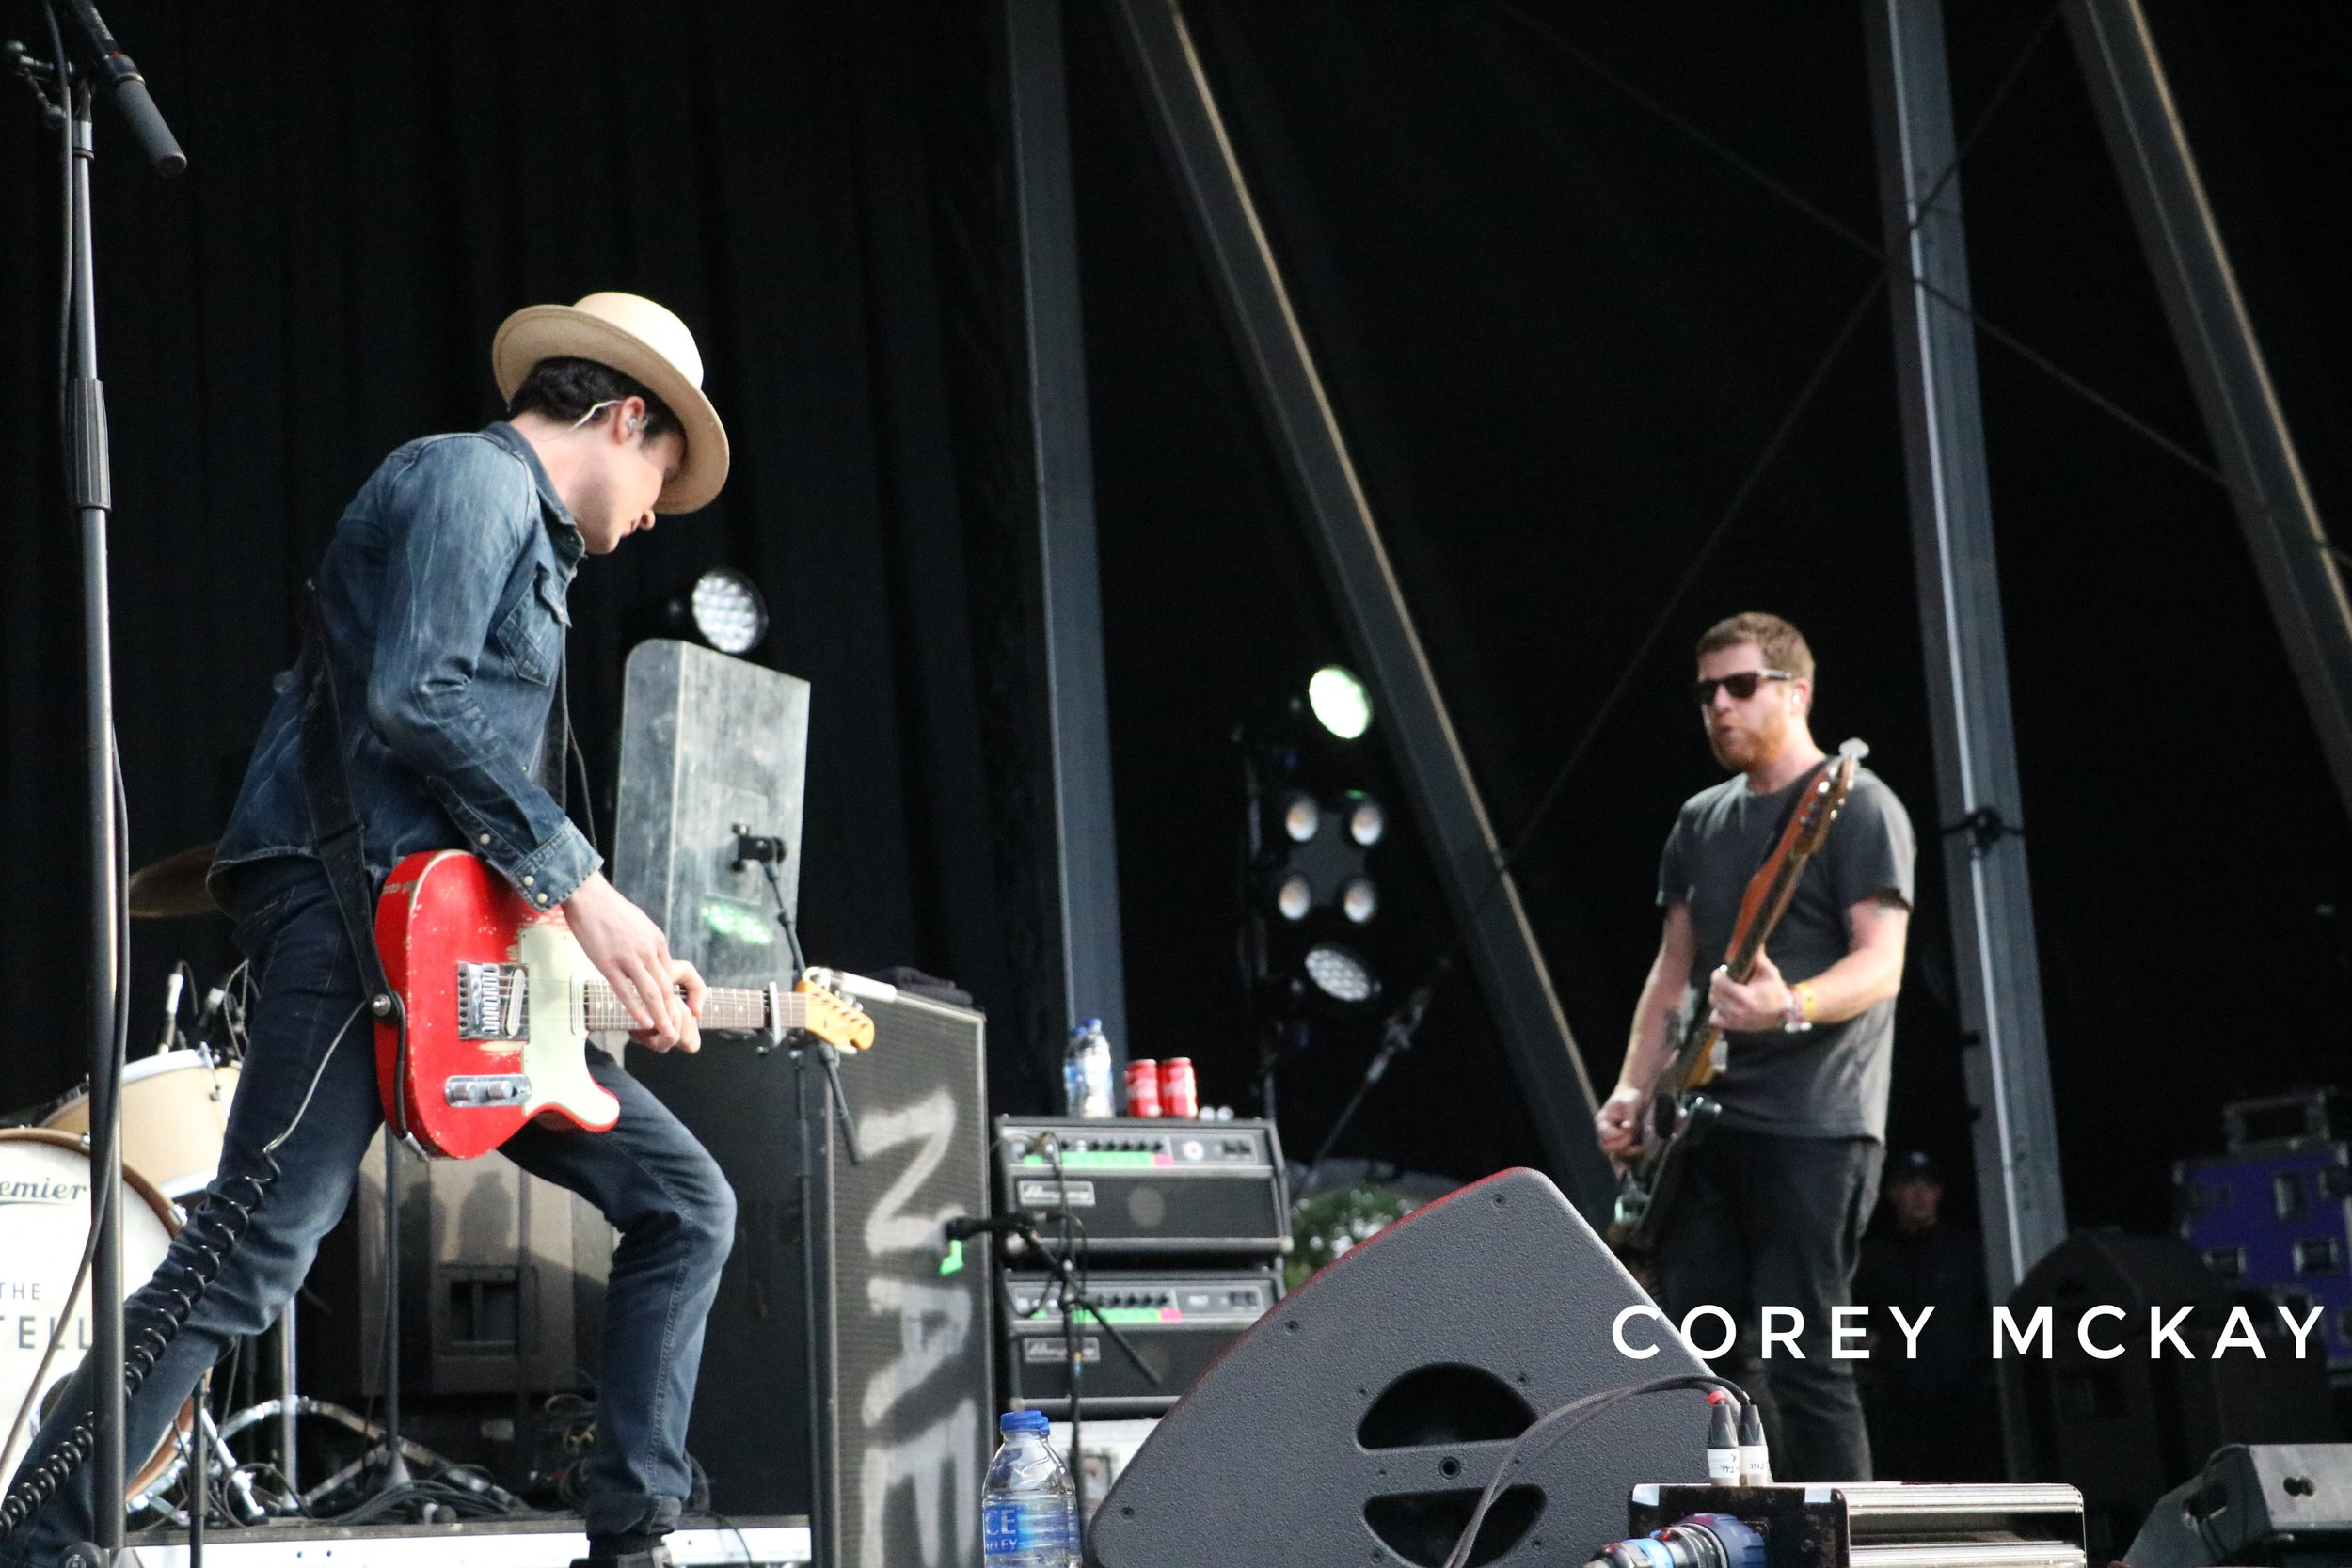 THE FRATELLIS PERFORMING AT CARNIVAL FIFTY SIX FESTIVAL 2017 - 12/08/2017  PICTURE BY: COREY MCKAY PHOTOGRAPHY